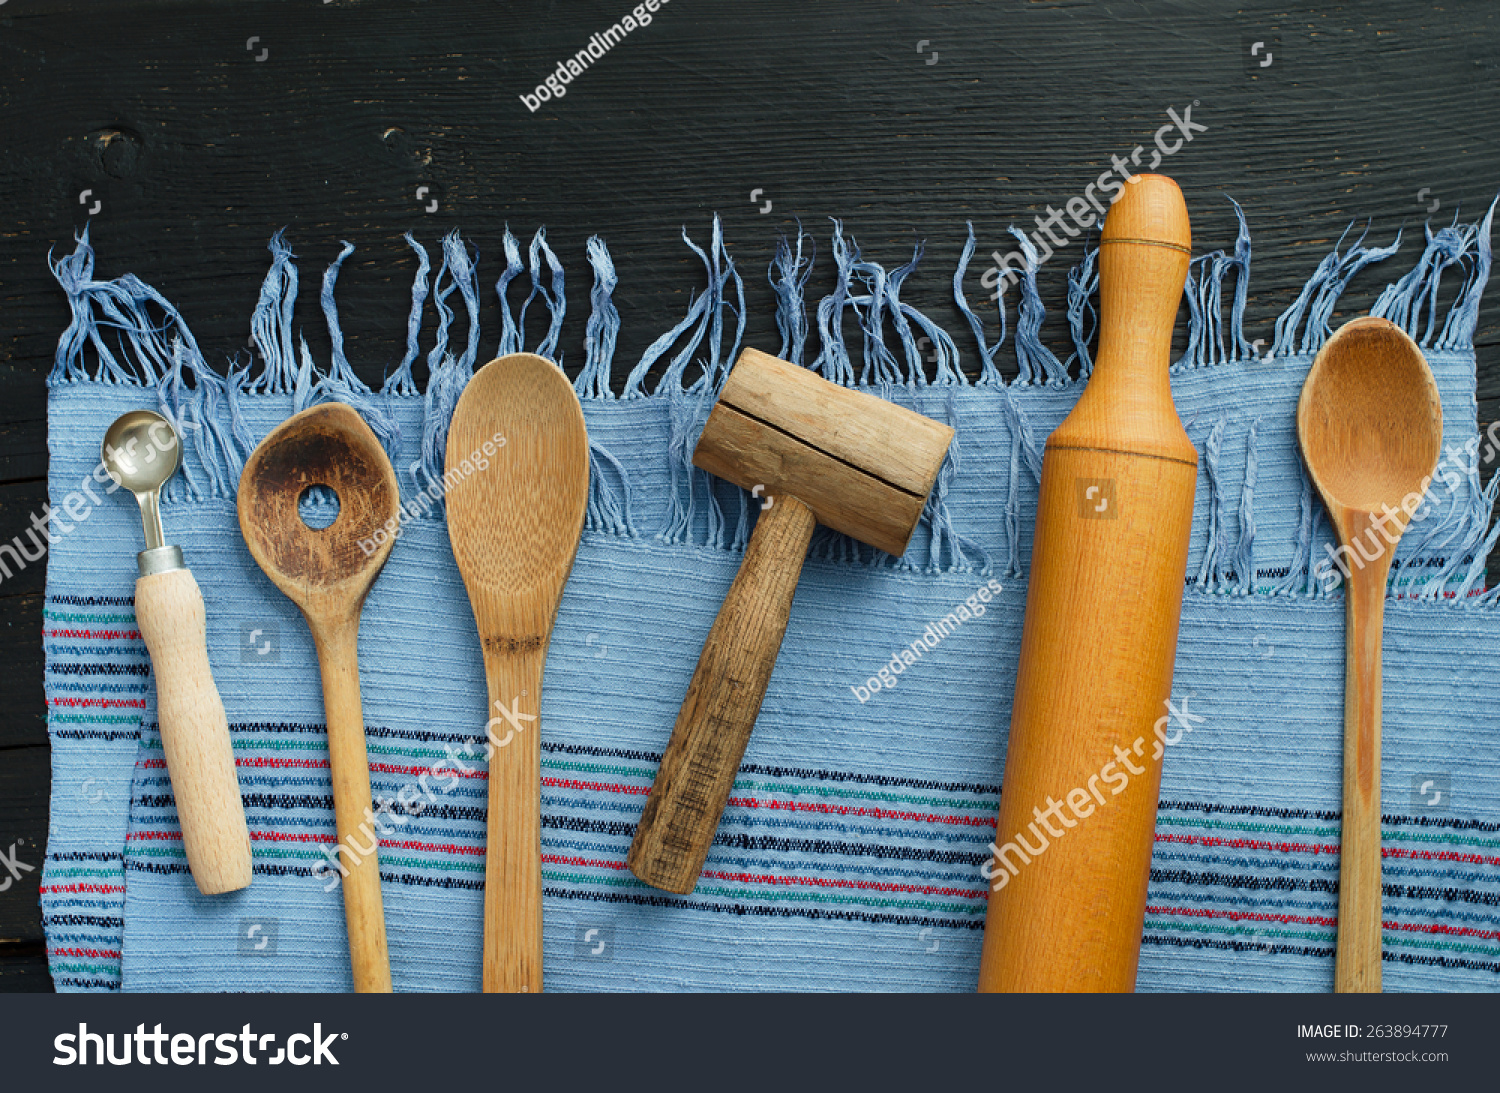 Set of various kitchen tools on old wooden table, top view. Wooden ...